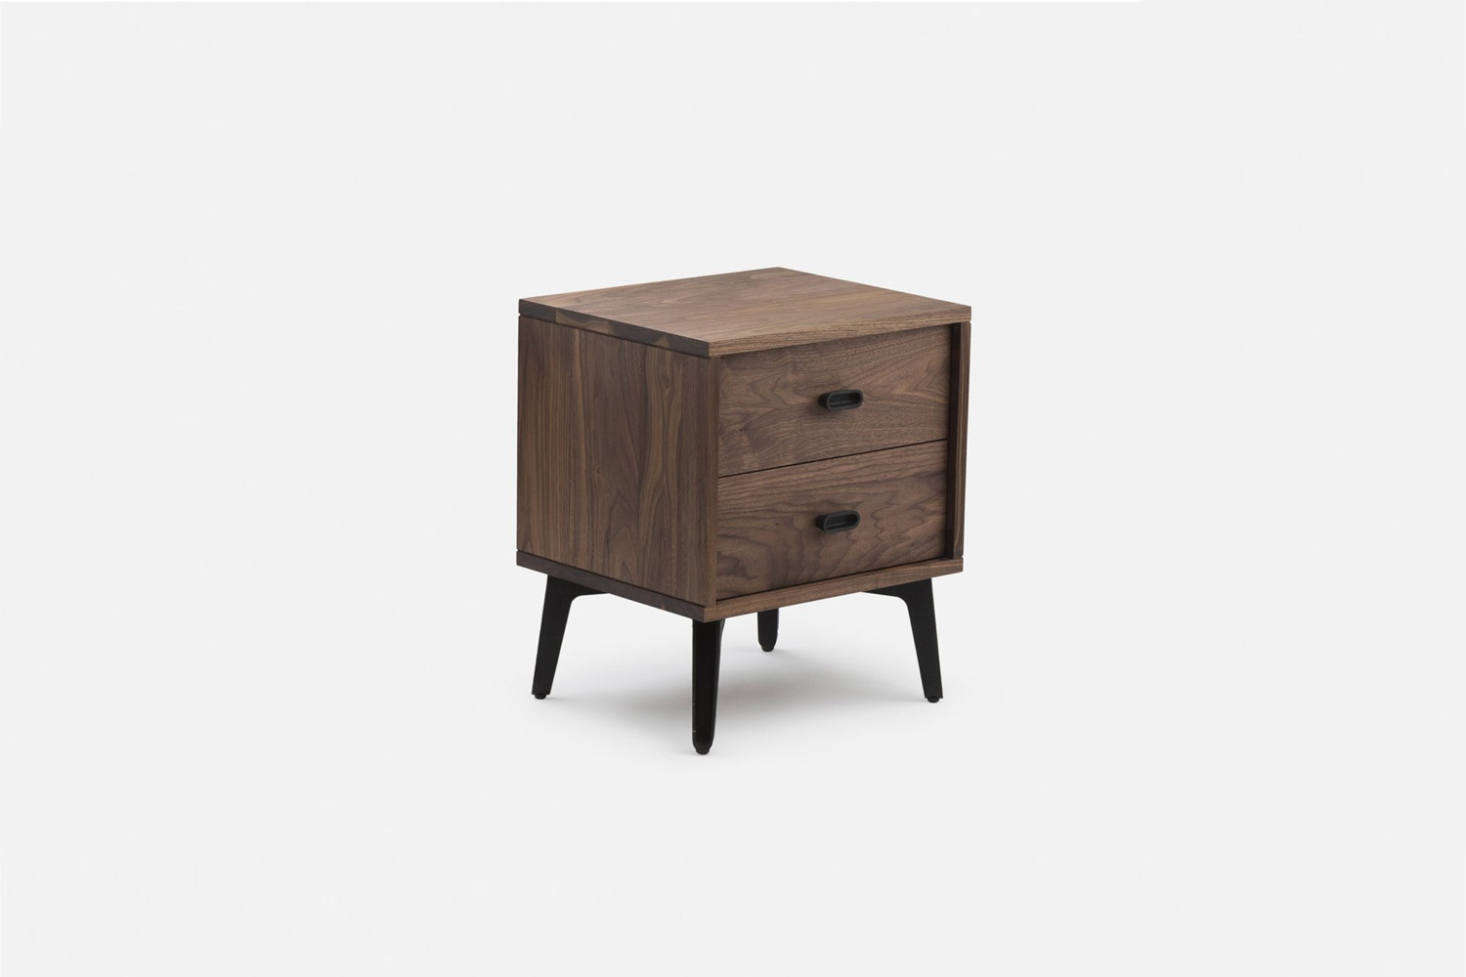 Designed by Matthew Hilton for De La Espada, theMcQueen Bedside Chest has two drawers (withsoft-closing piston action), dovetail joinery, and cast iron handles. Available in Danish-oiled walnut. Contact De La Espada for more information.